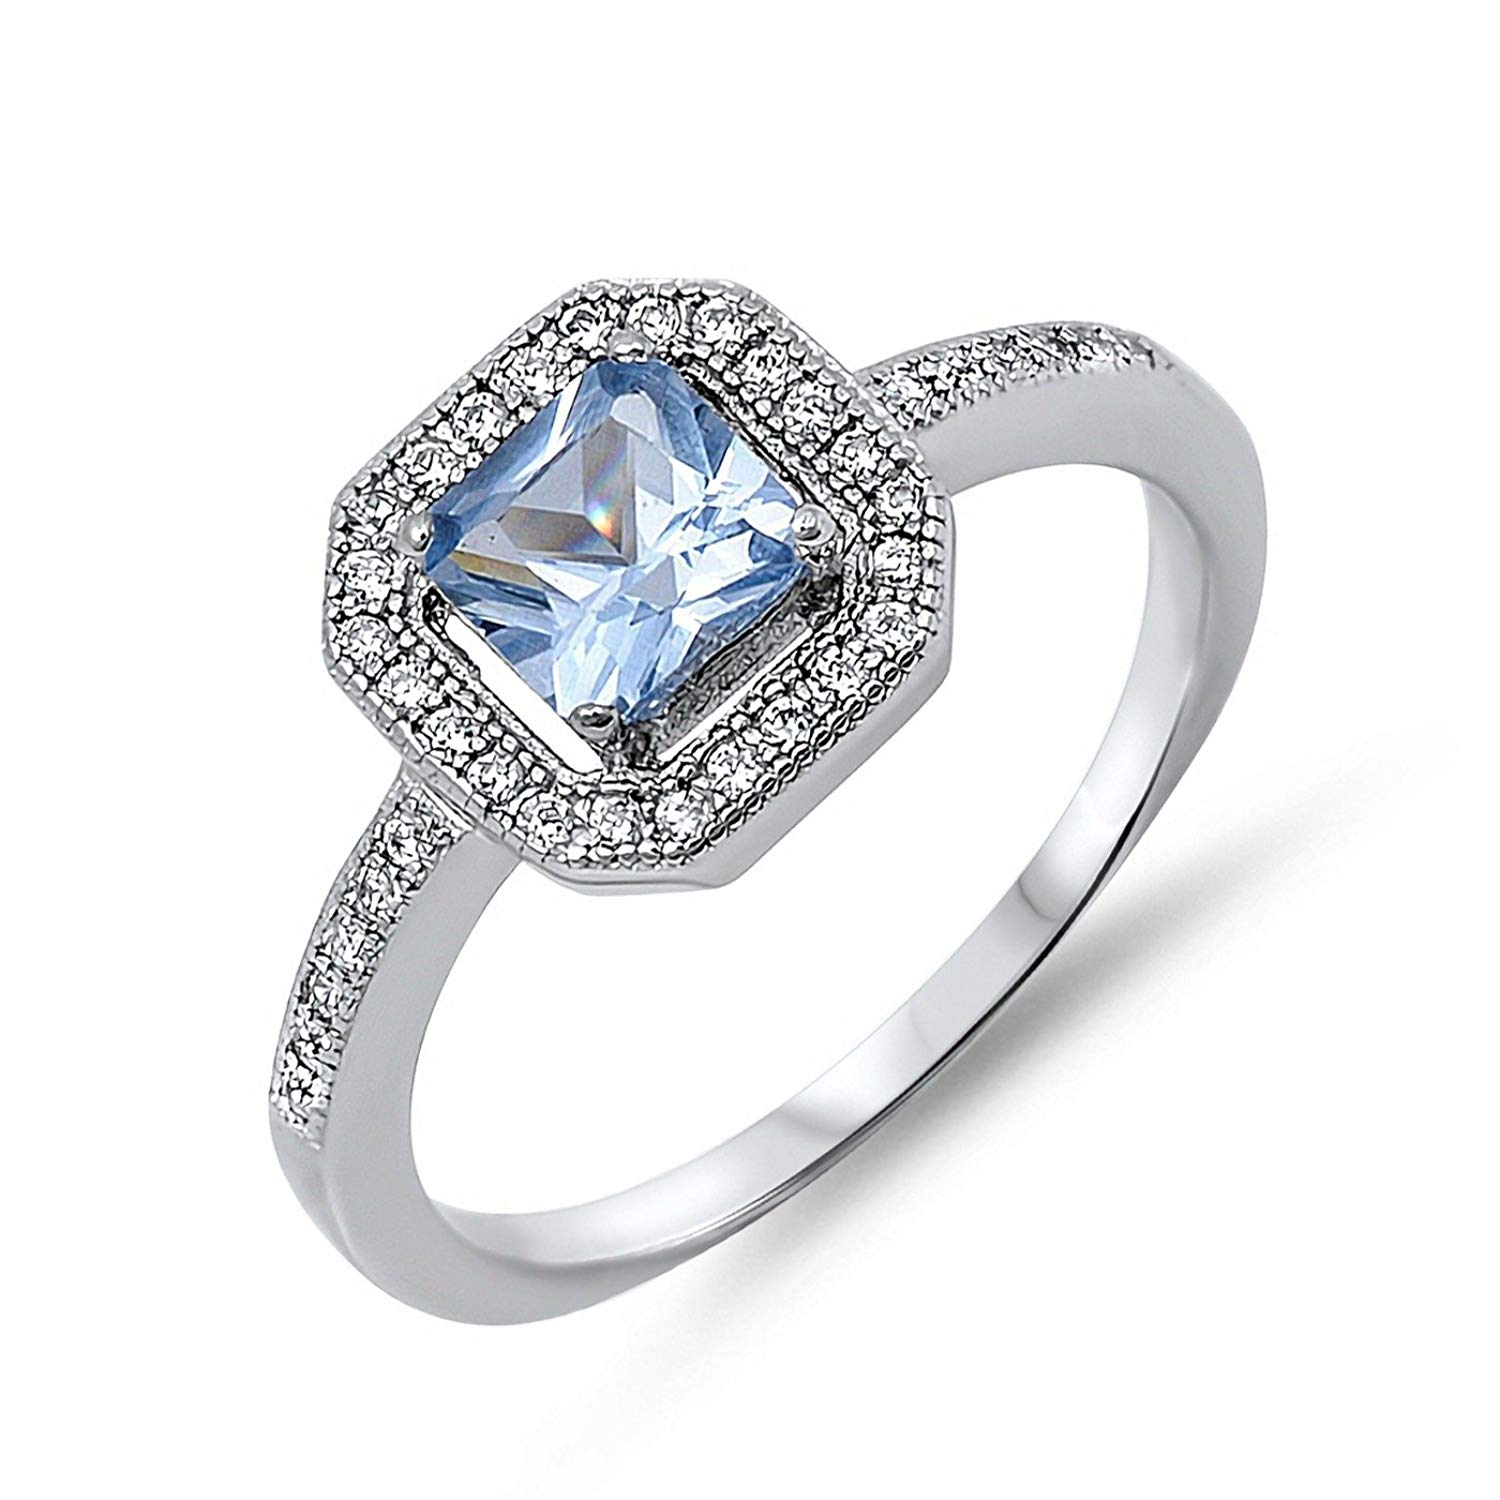 40e023518 Get Quotations · Princess Cut Embraced Simulated Aquamarine March CZ Womens  925 Sterling Silver Ring Sizes 5-10